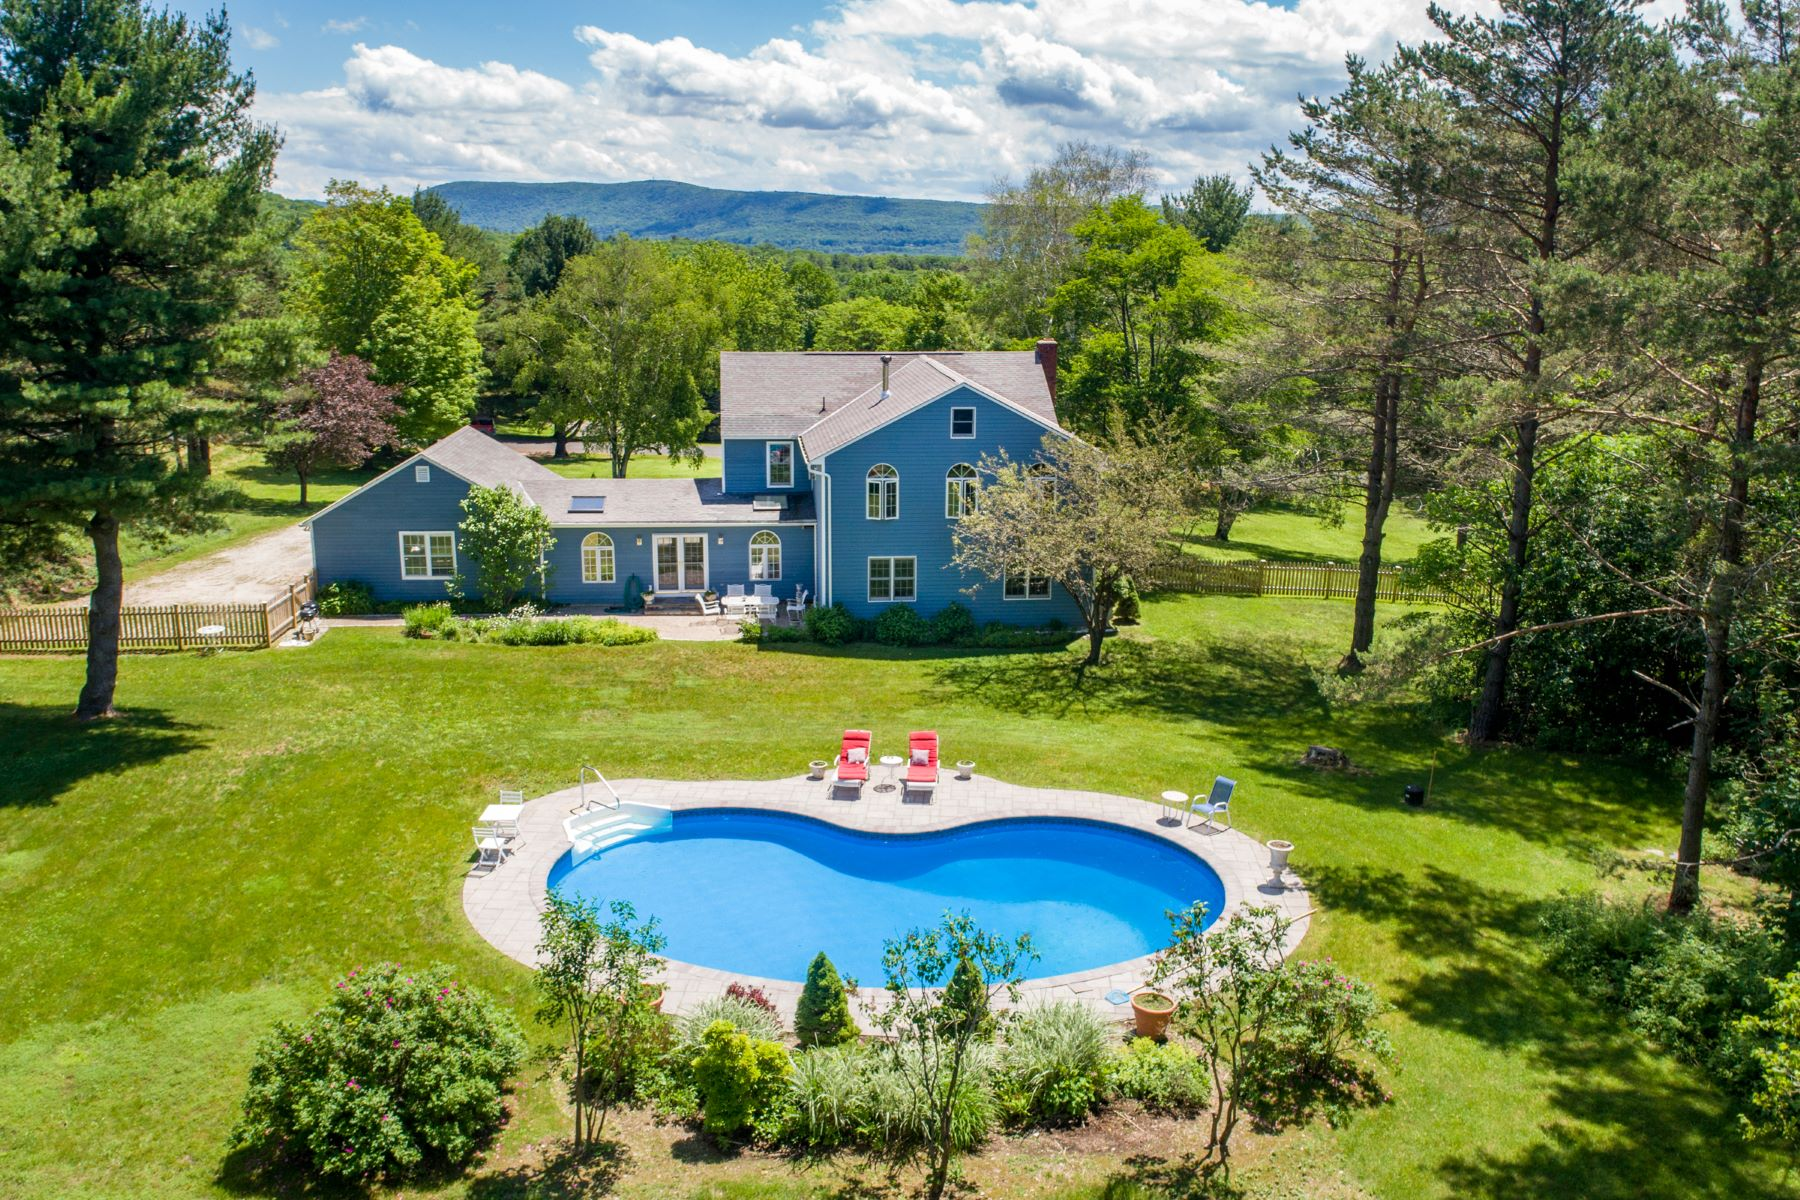 Villa per Vendita alle ore Classic Colonial with Privacy and Pool 91 Deer Hill Rd Richmond, Massachusetts 01254 Stati Uniti